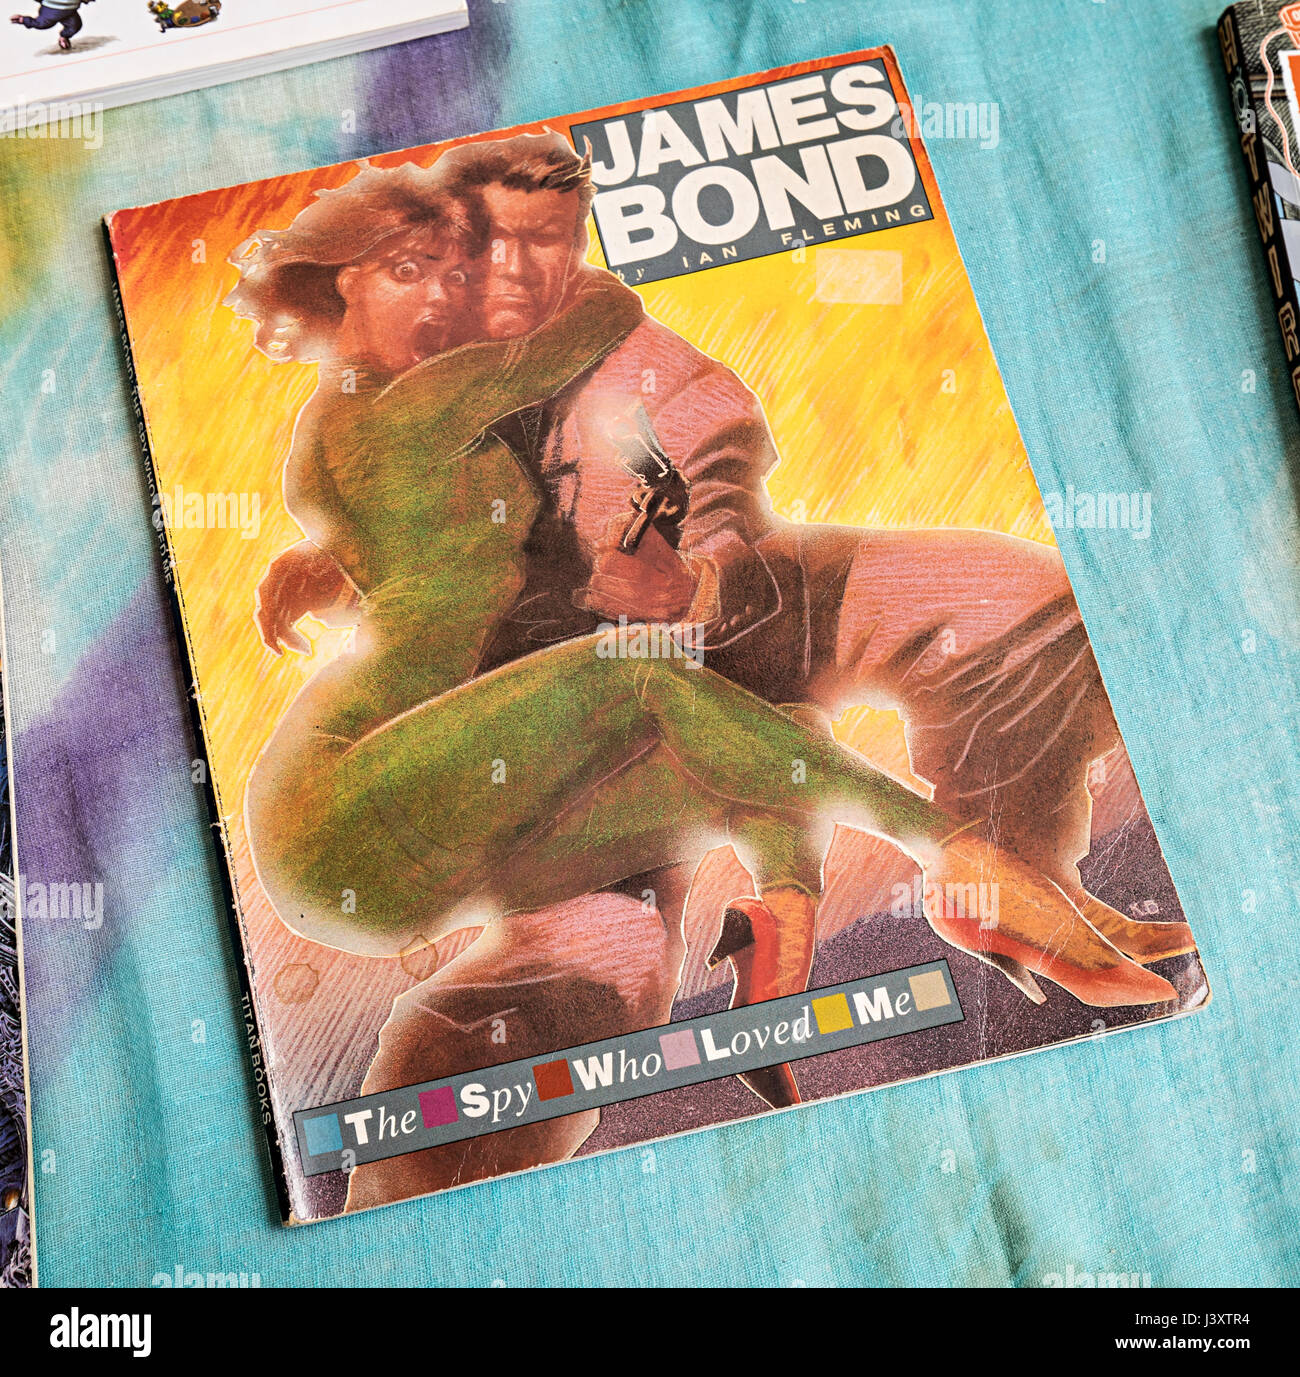 James Bond graphic comic story book of The Spy Who Loved Me published in 1989 Stock Photo